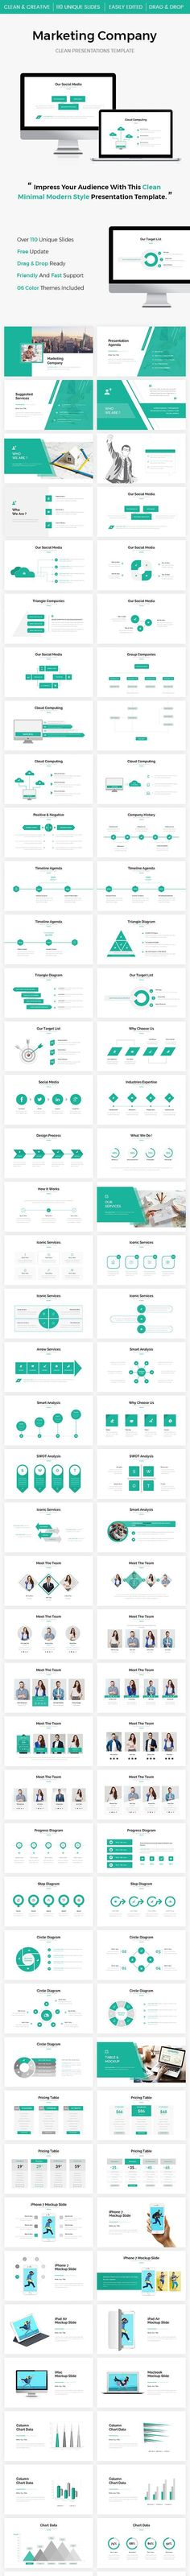 Marketing Company Powerpoint Template for $17 #GraphicDesign #powerpoint #BusinessPowerPointTemplate #PresentationTemplates #set #business #EnvatoMarket #GraphicDesigner #PresentationDesign #template #ppt #PPTTemplates #DesignCollection #PowerPointTemplate #graphics #collections #design #GraphicResources #DesignSets #presentation Business Presentation, Presentation Design, Presentation Templates, Cool Themes, Business Powerpoint Templates, Vector Shapes, Branding Design, Graphic Design, Marketing